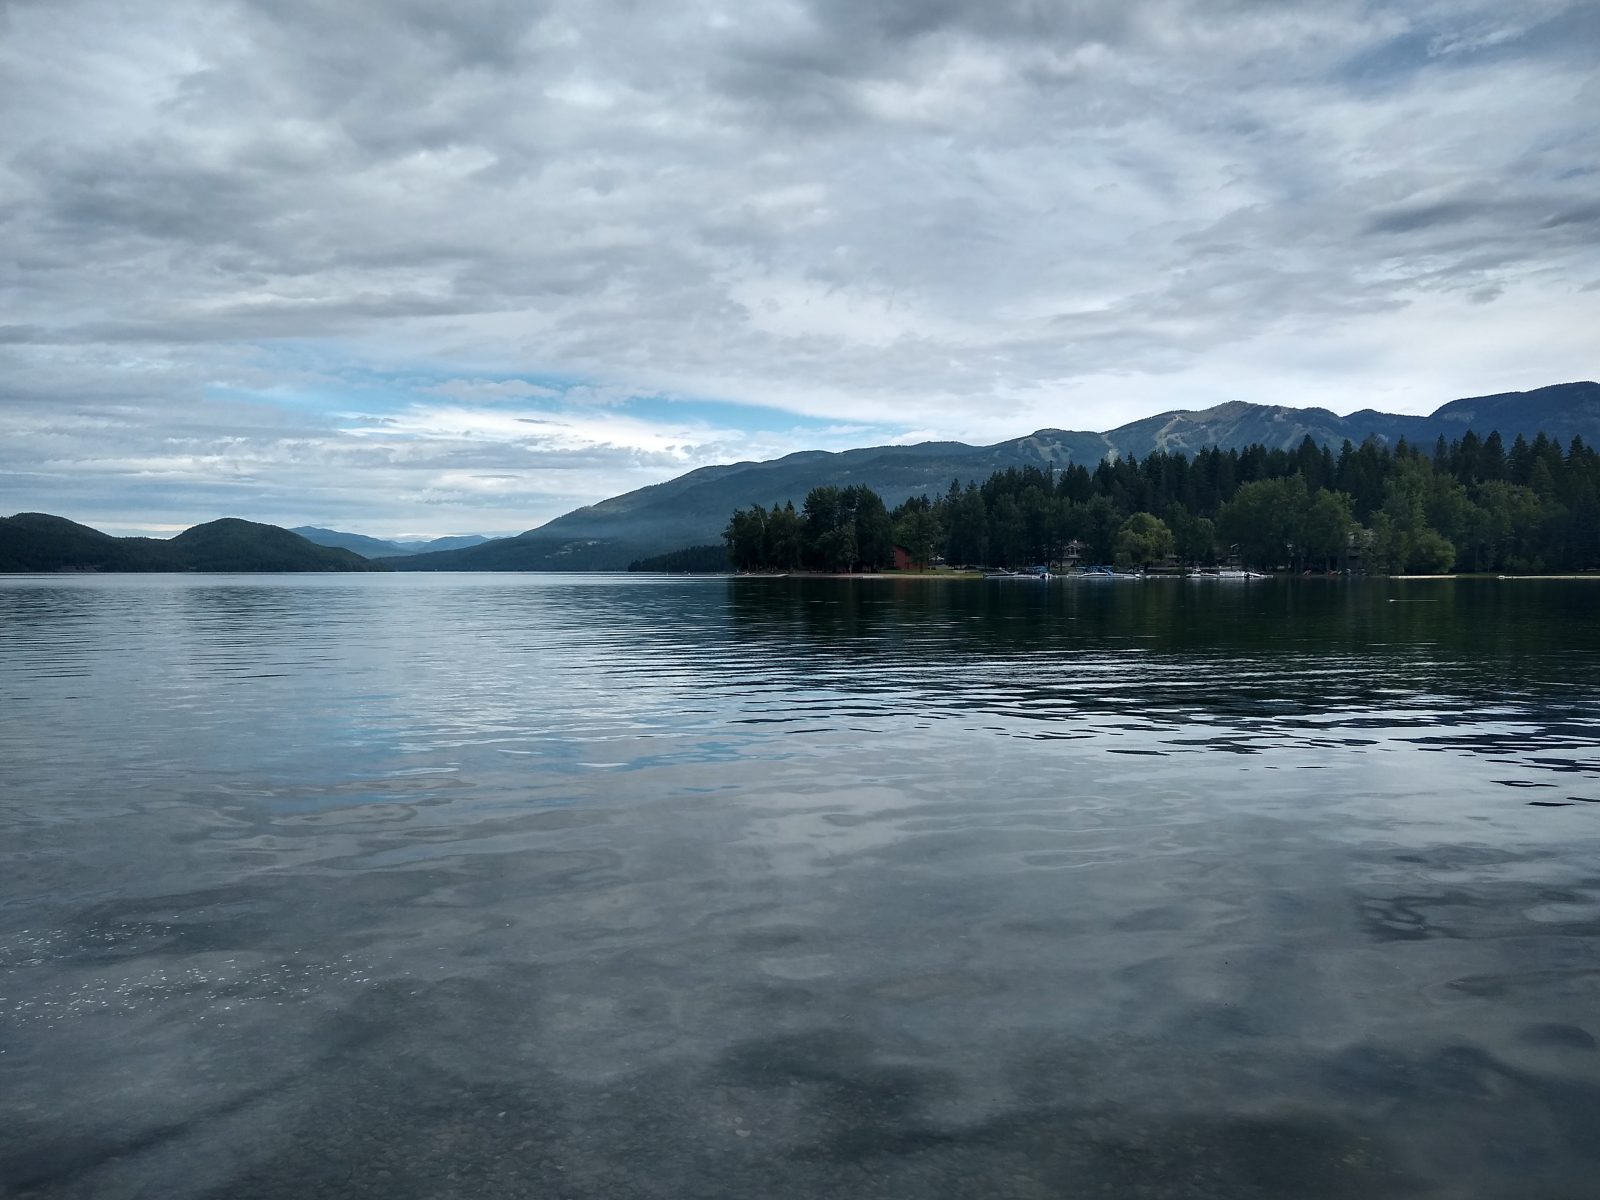 Whitefish Lake - June 24, 2020